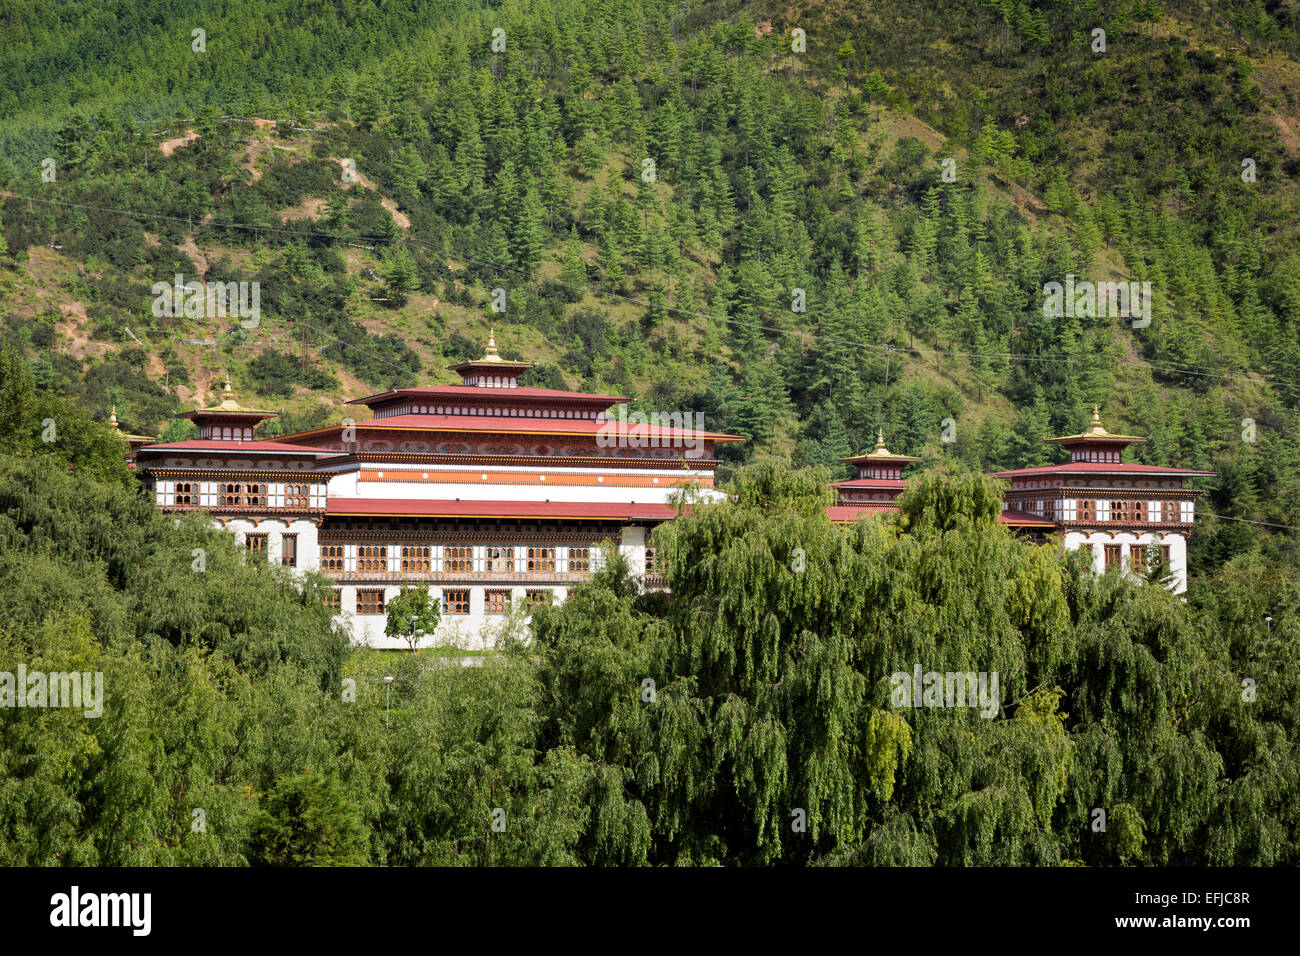 BU00020-00...BHUTAN - Government buildings in the capital city in Thimphu. - Stock Image